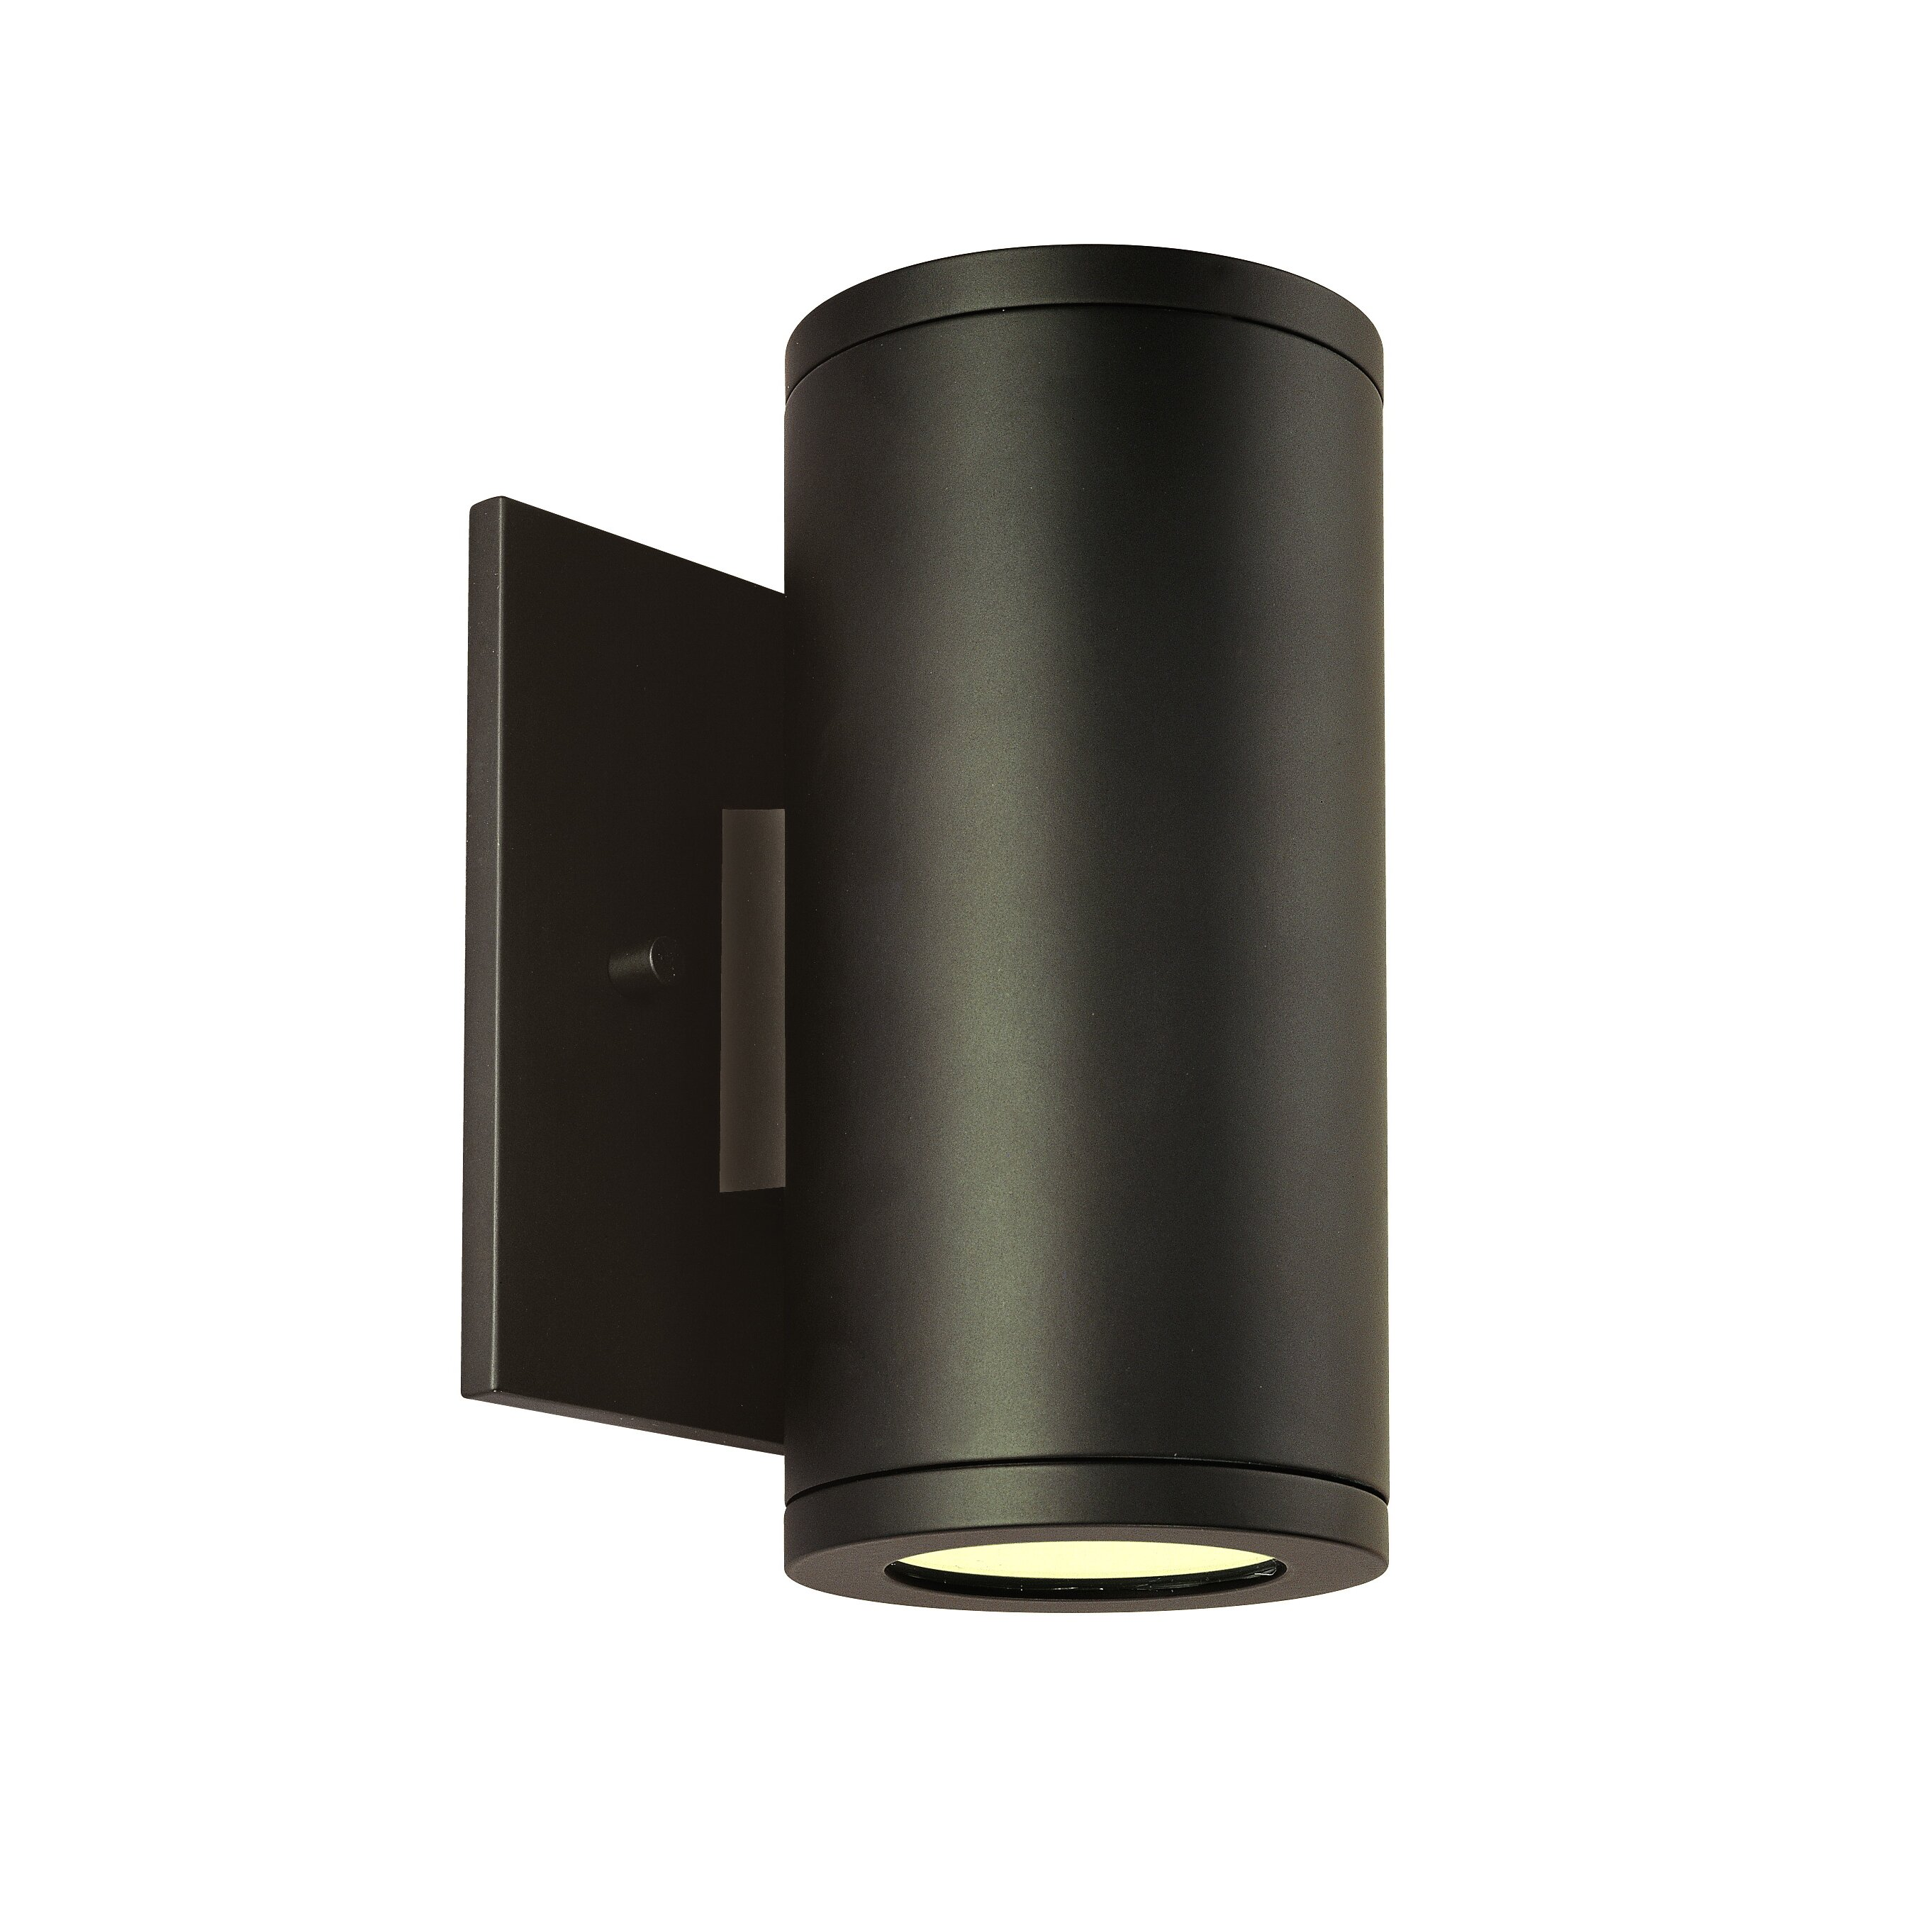 Csl silo sconce reviews wayfair for Exterior light sconce